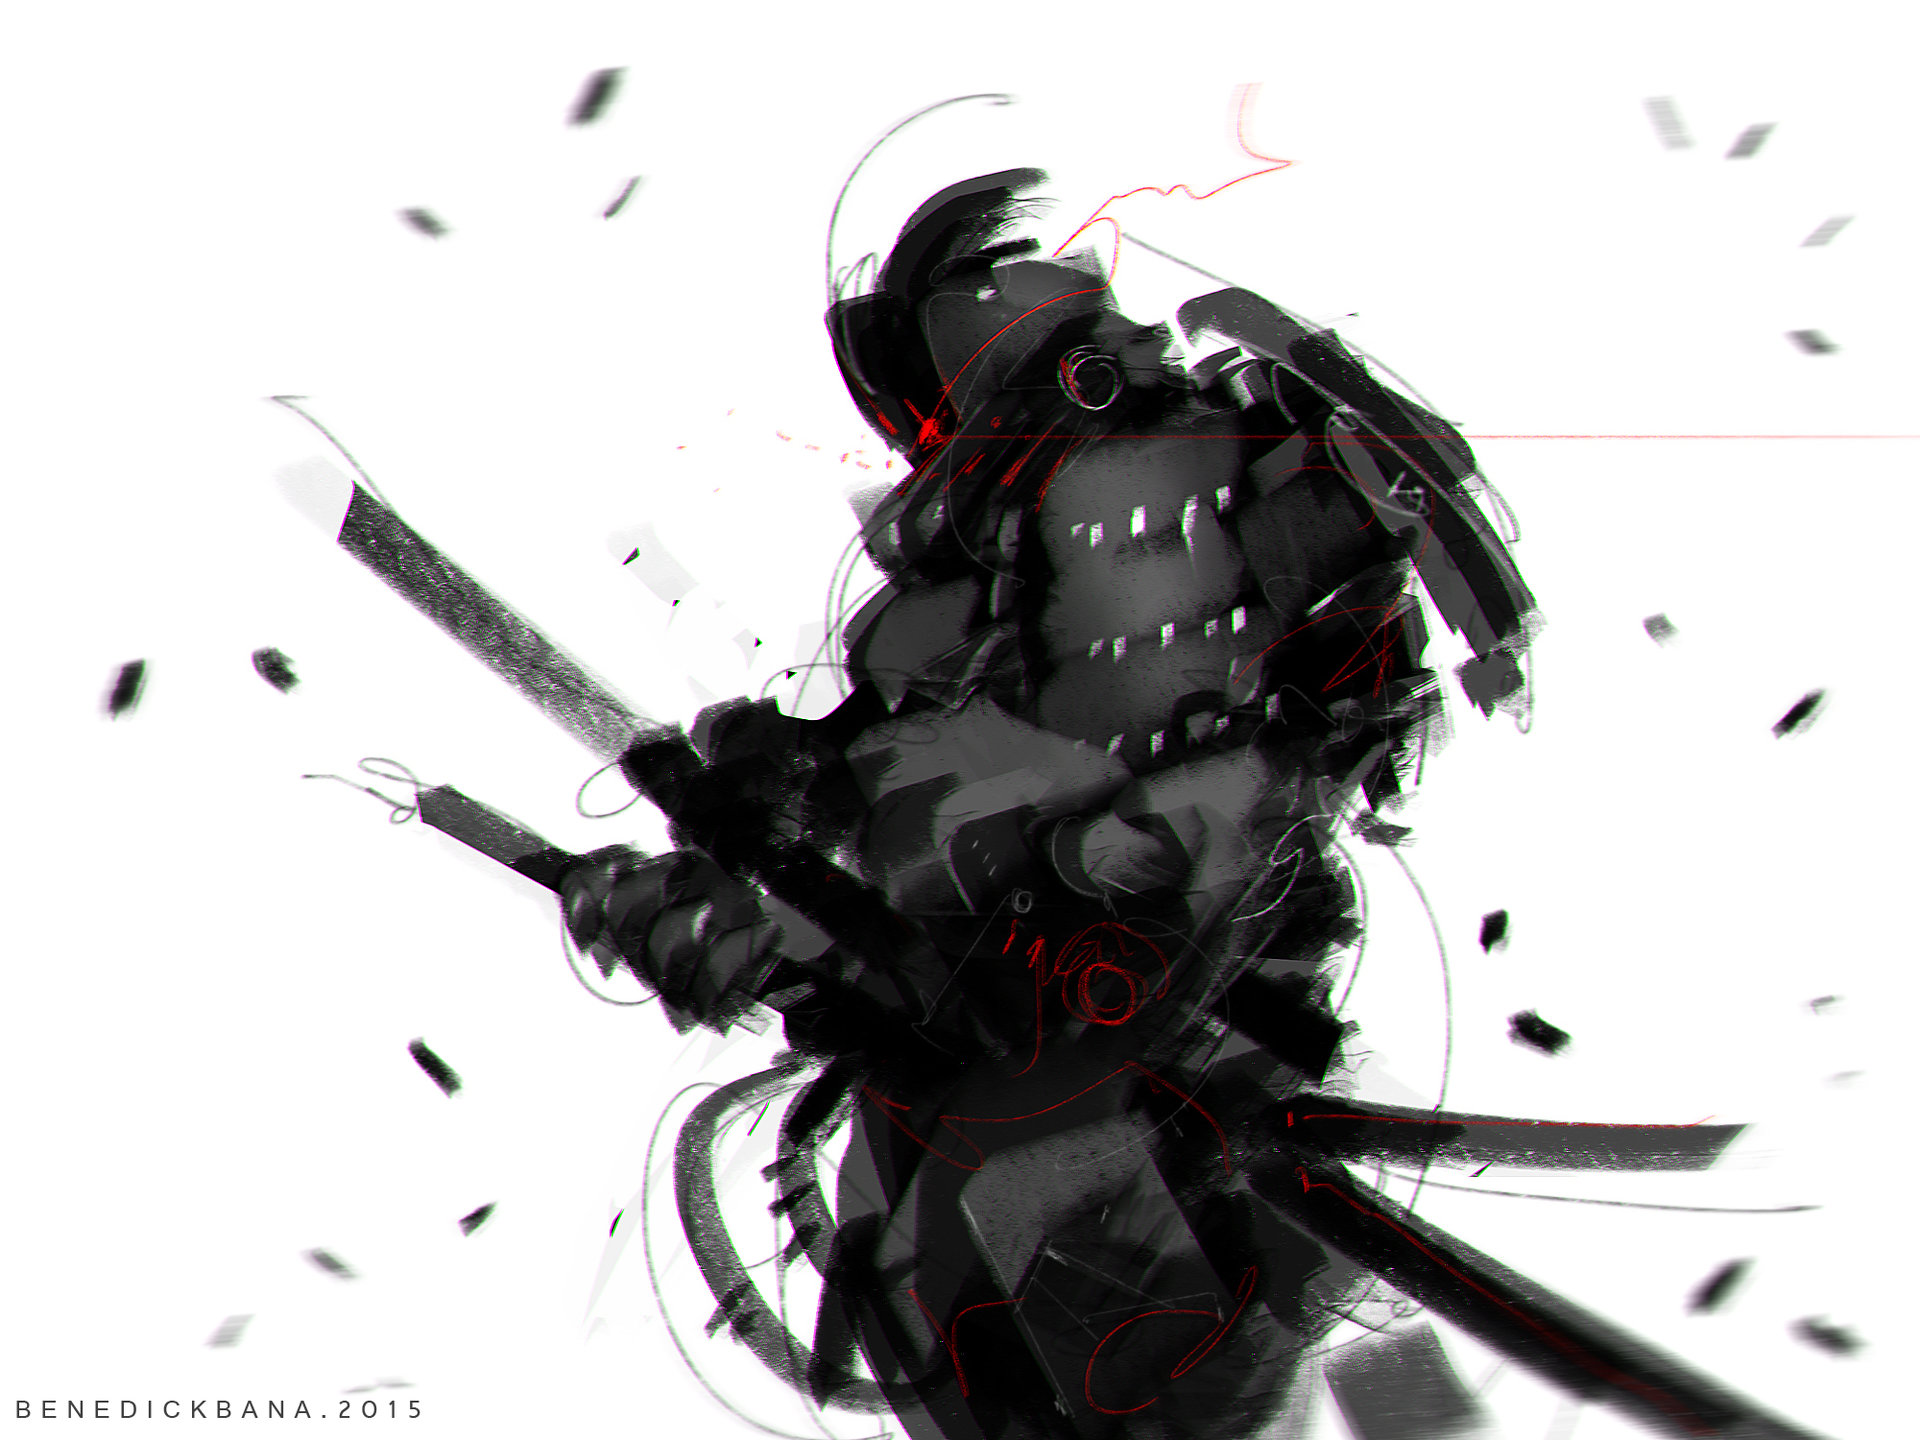 Benedick bana red eyes2